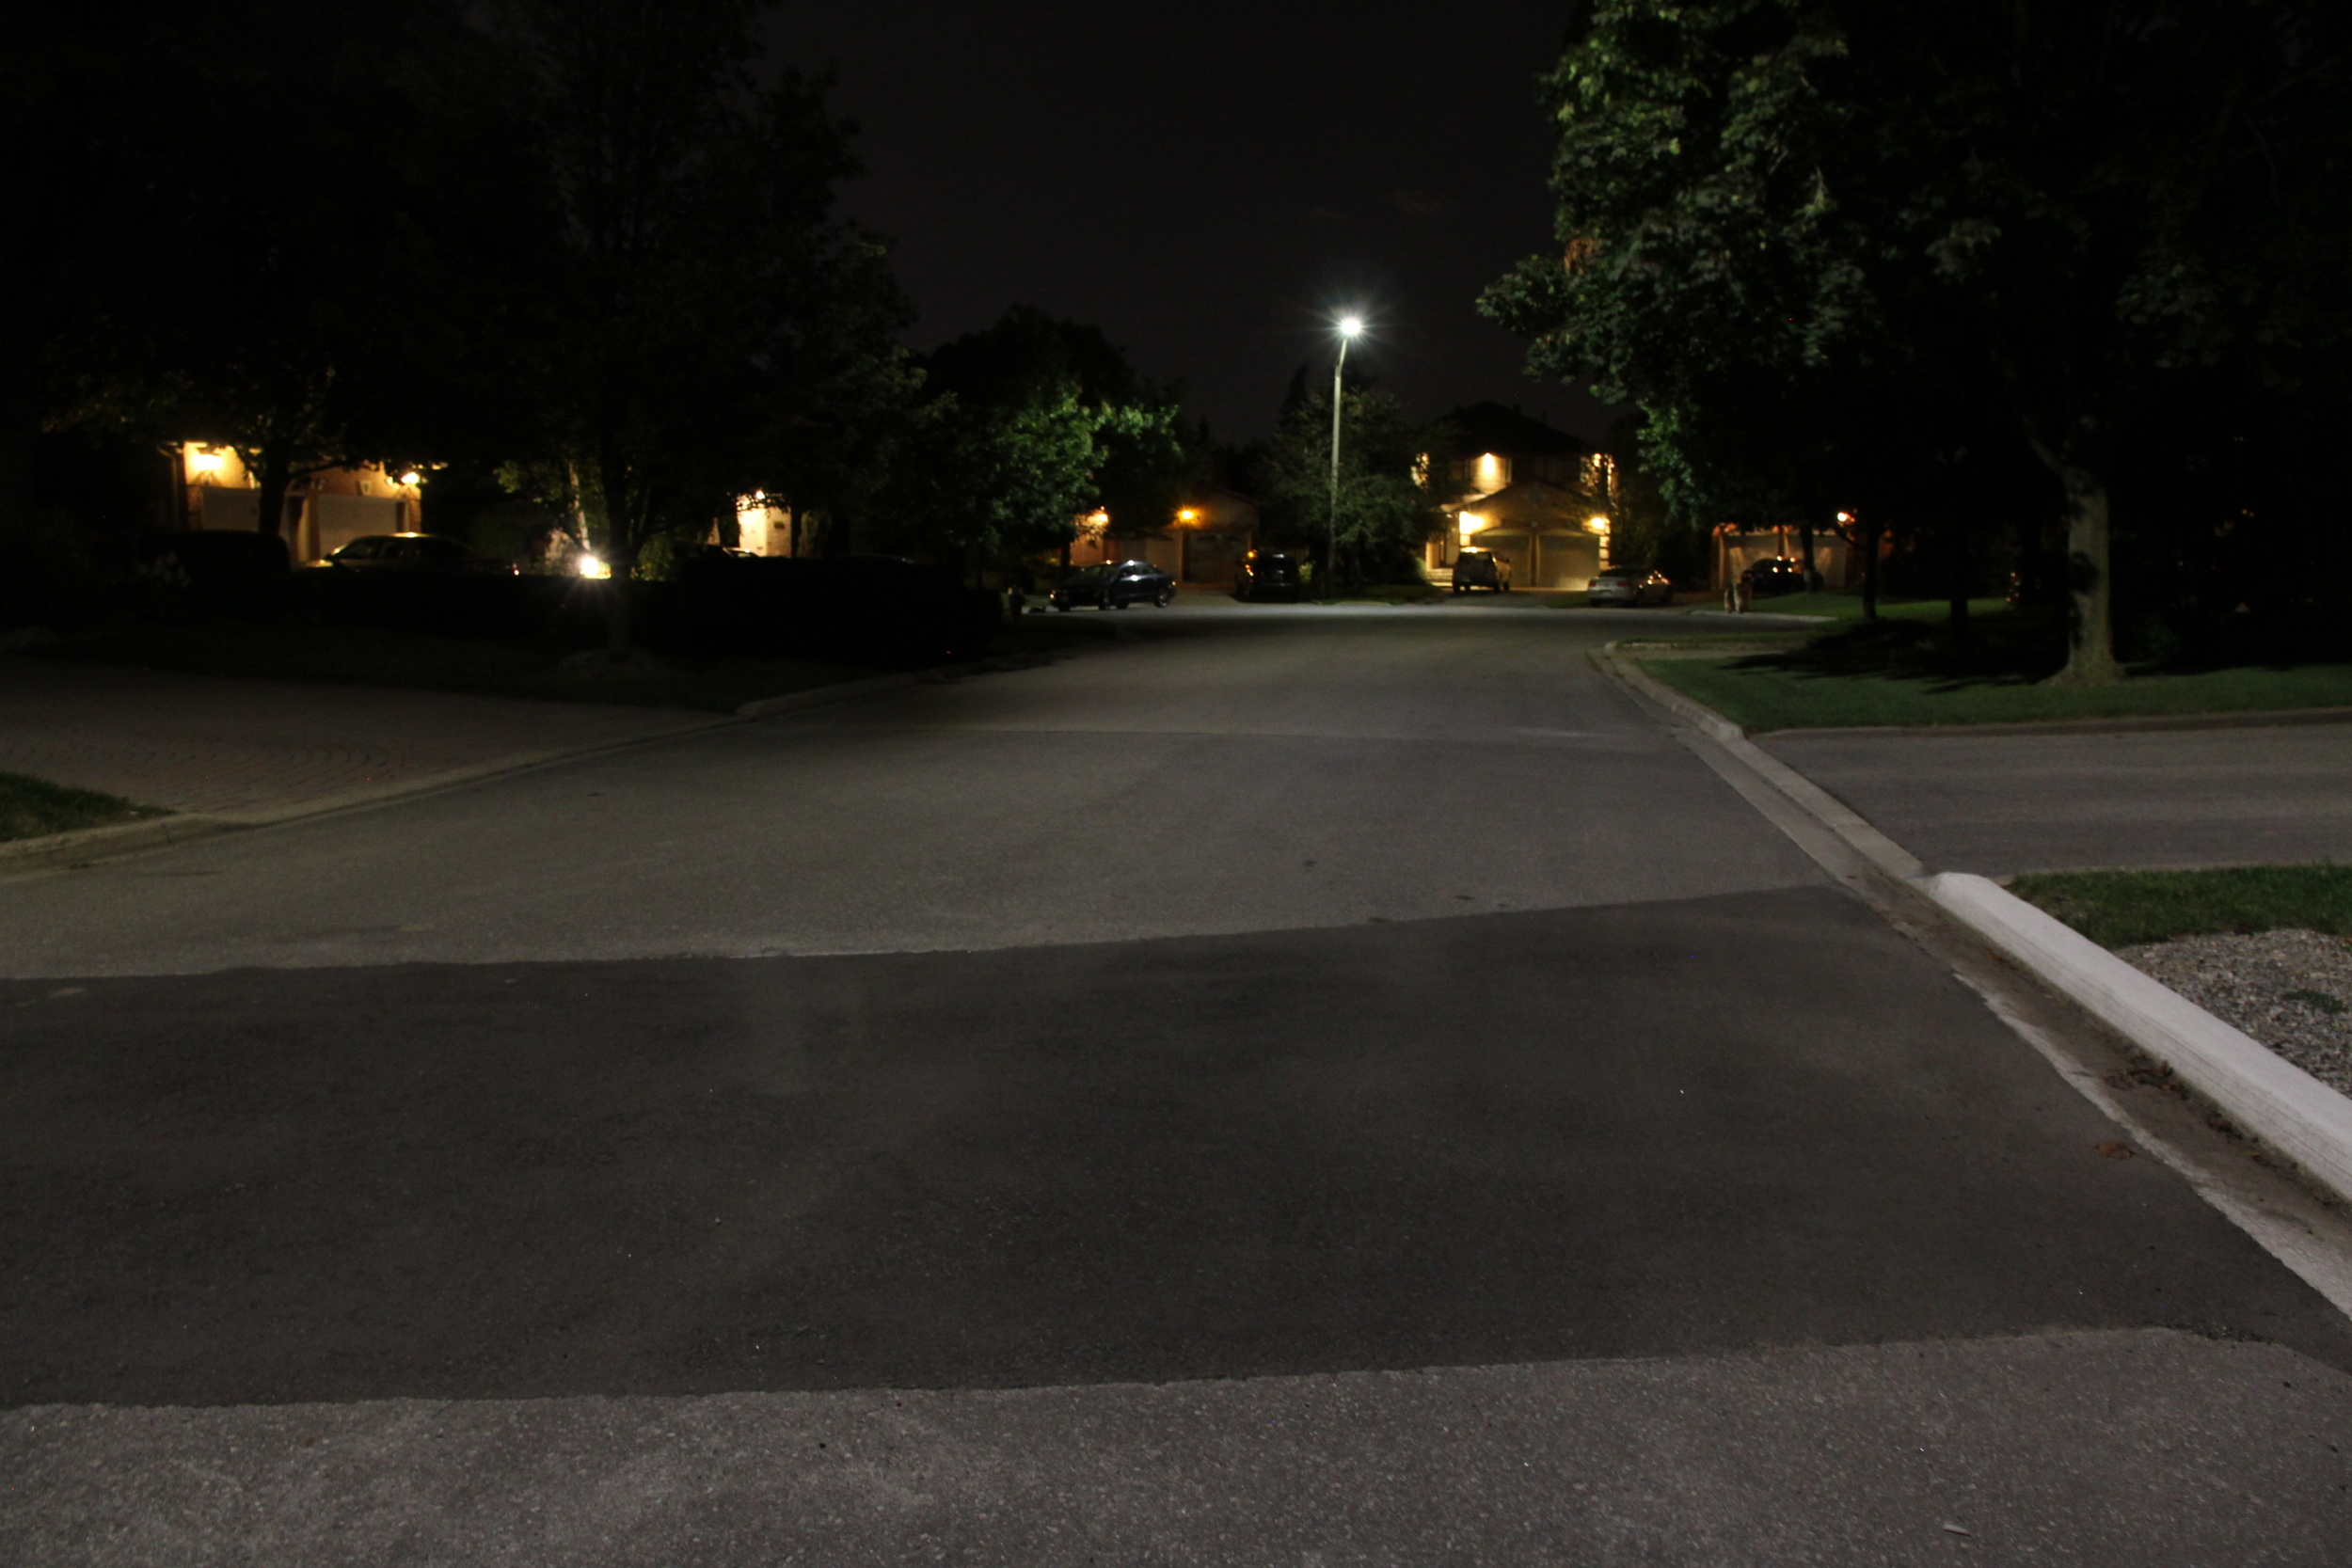 The first evening with LED streetlights - quite a change.